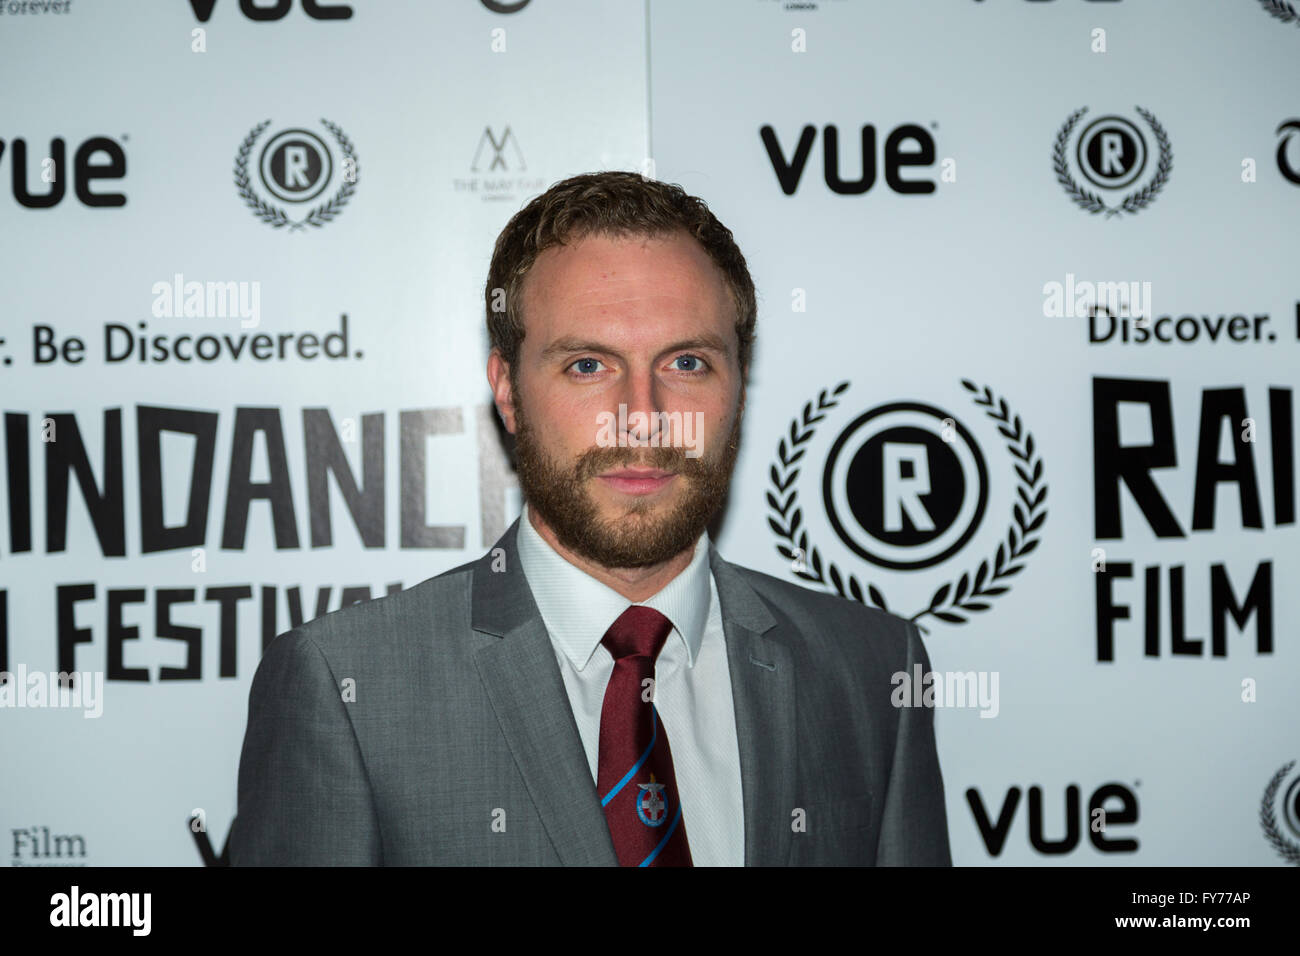 Ben Batt attends the UK Premiere of Keeping Rosy at the 22nd annual Raindance Film Festival in Vue Piccadilly, London. - Stock Image